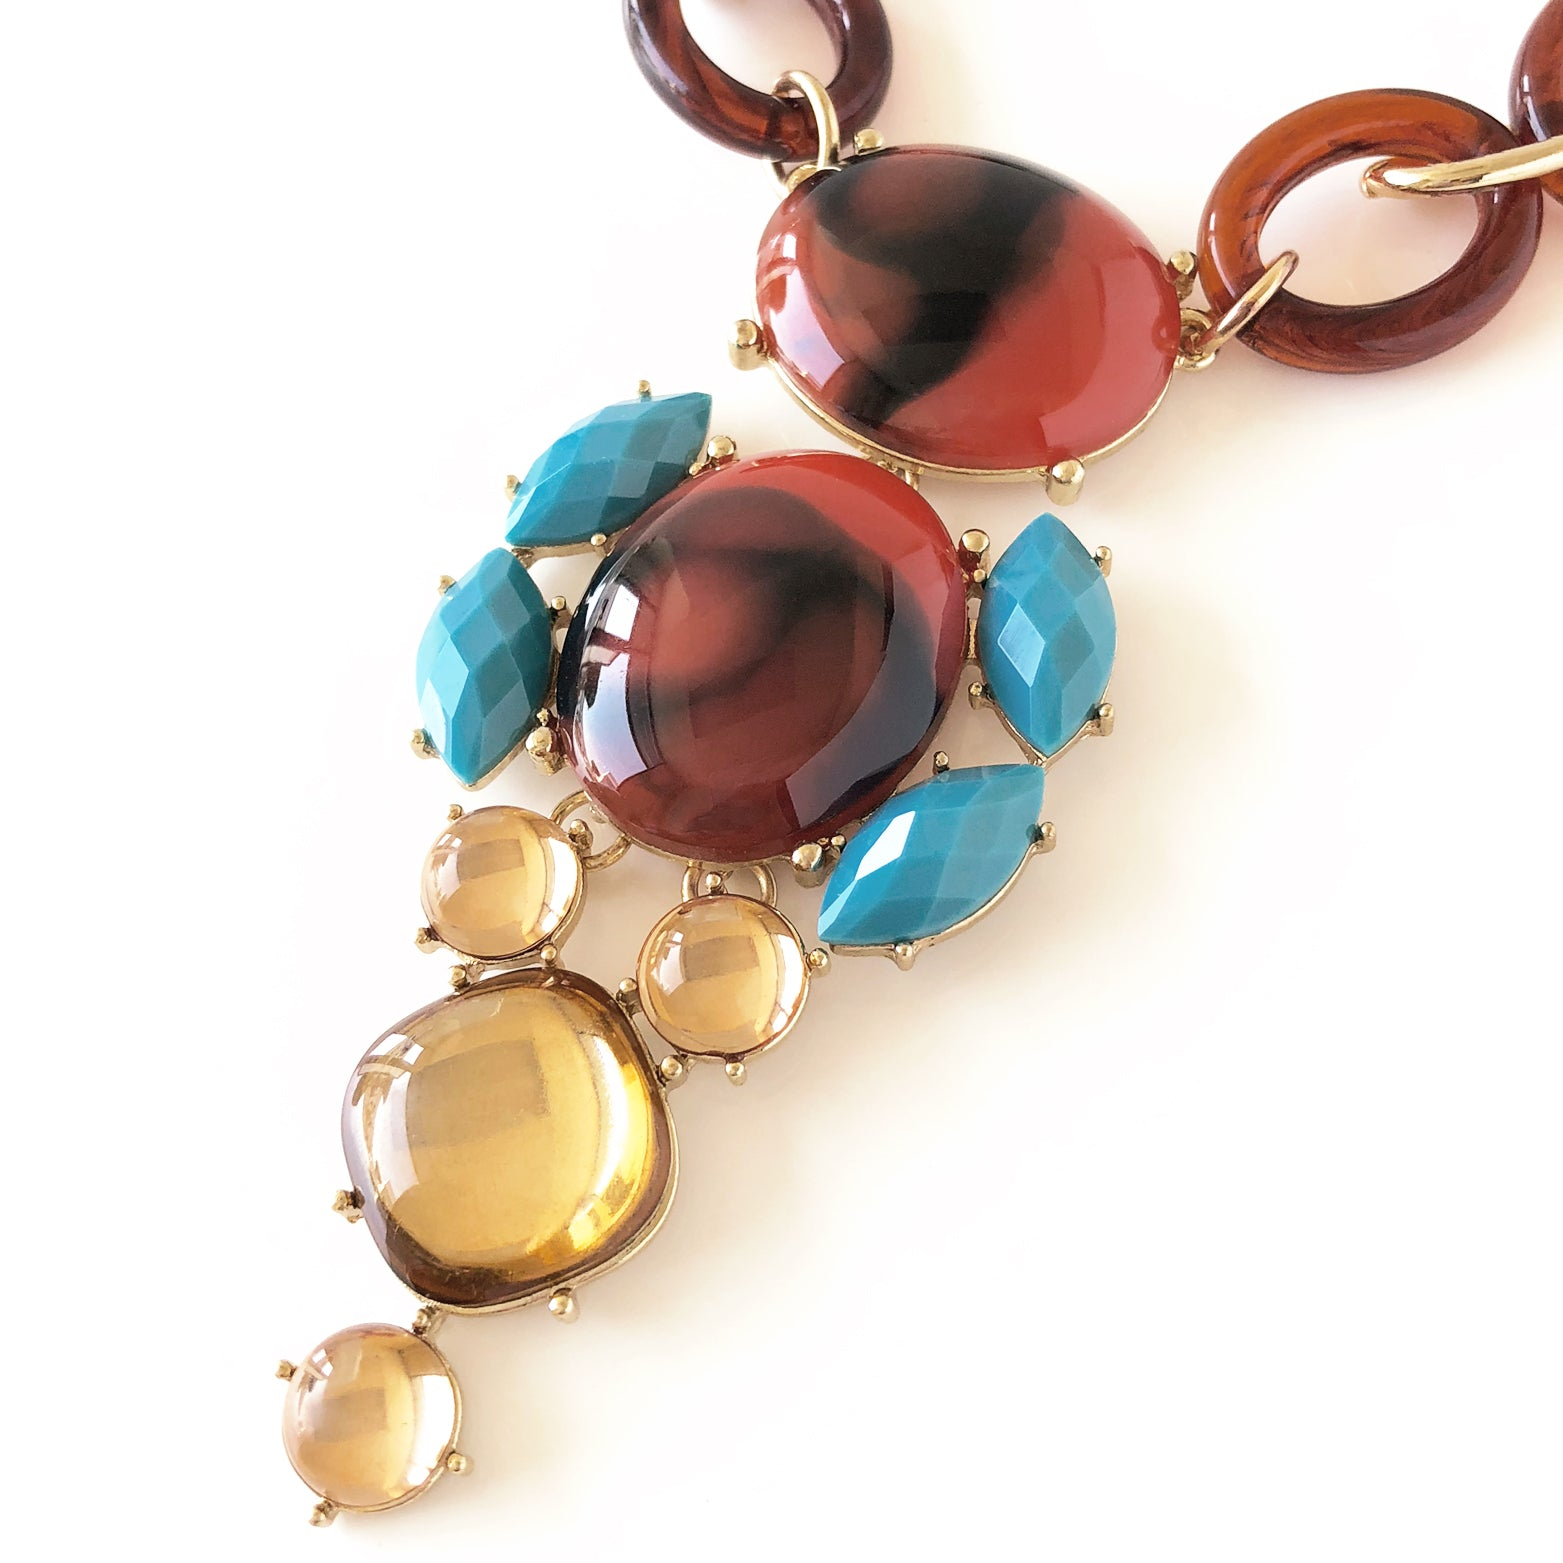 Retro Geo Statement Necklace - Love, Kuza